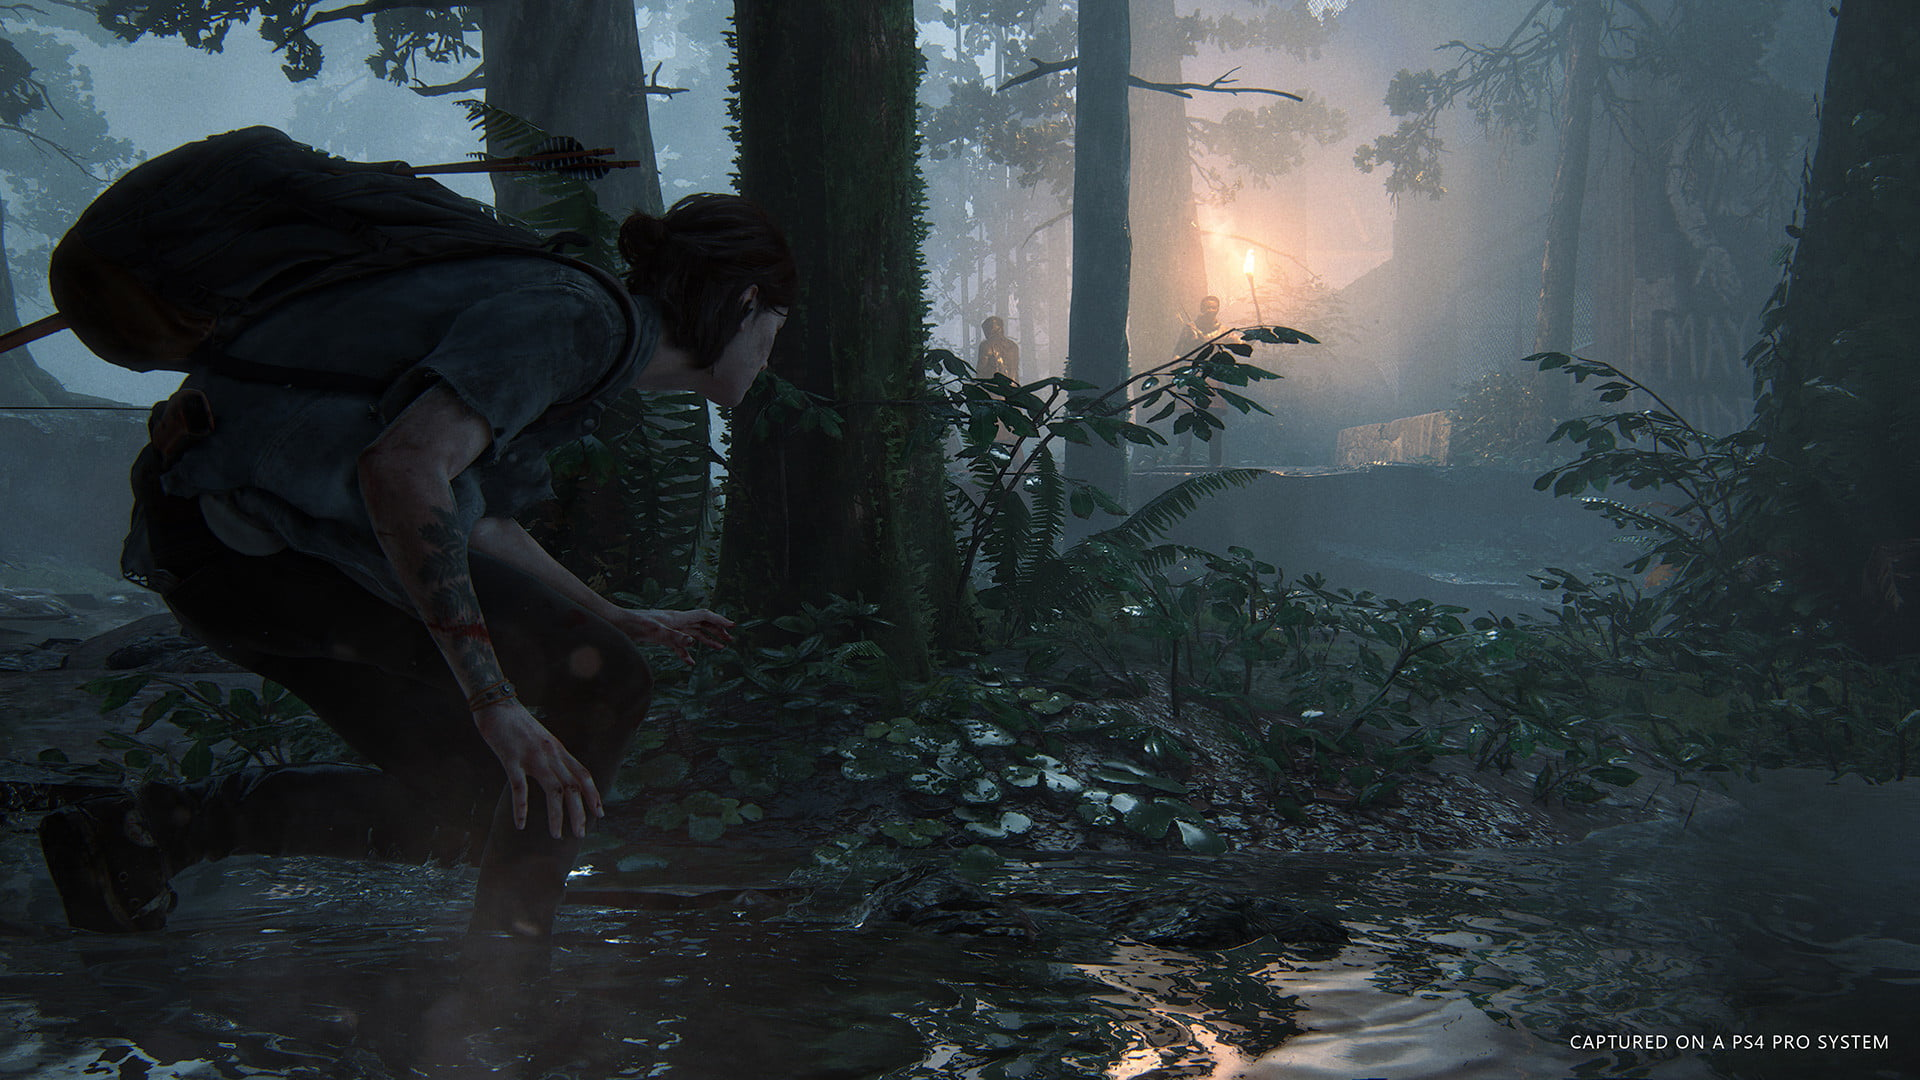 The Last Of Us Part 2 Releasing September 27 According To